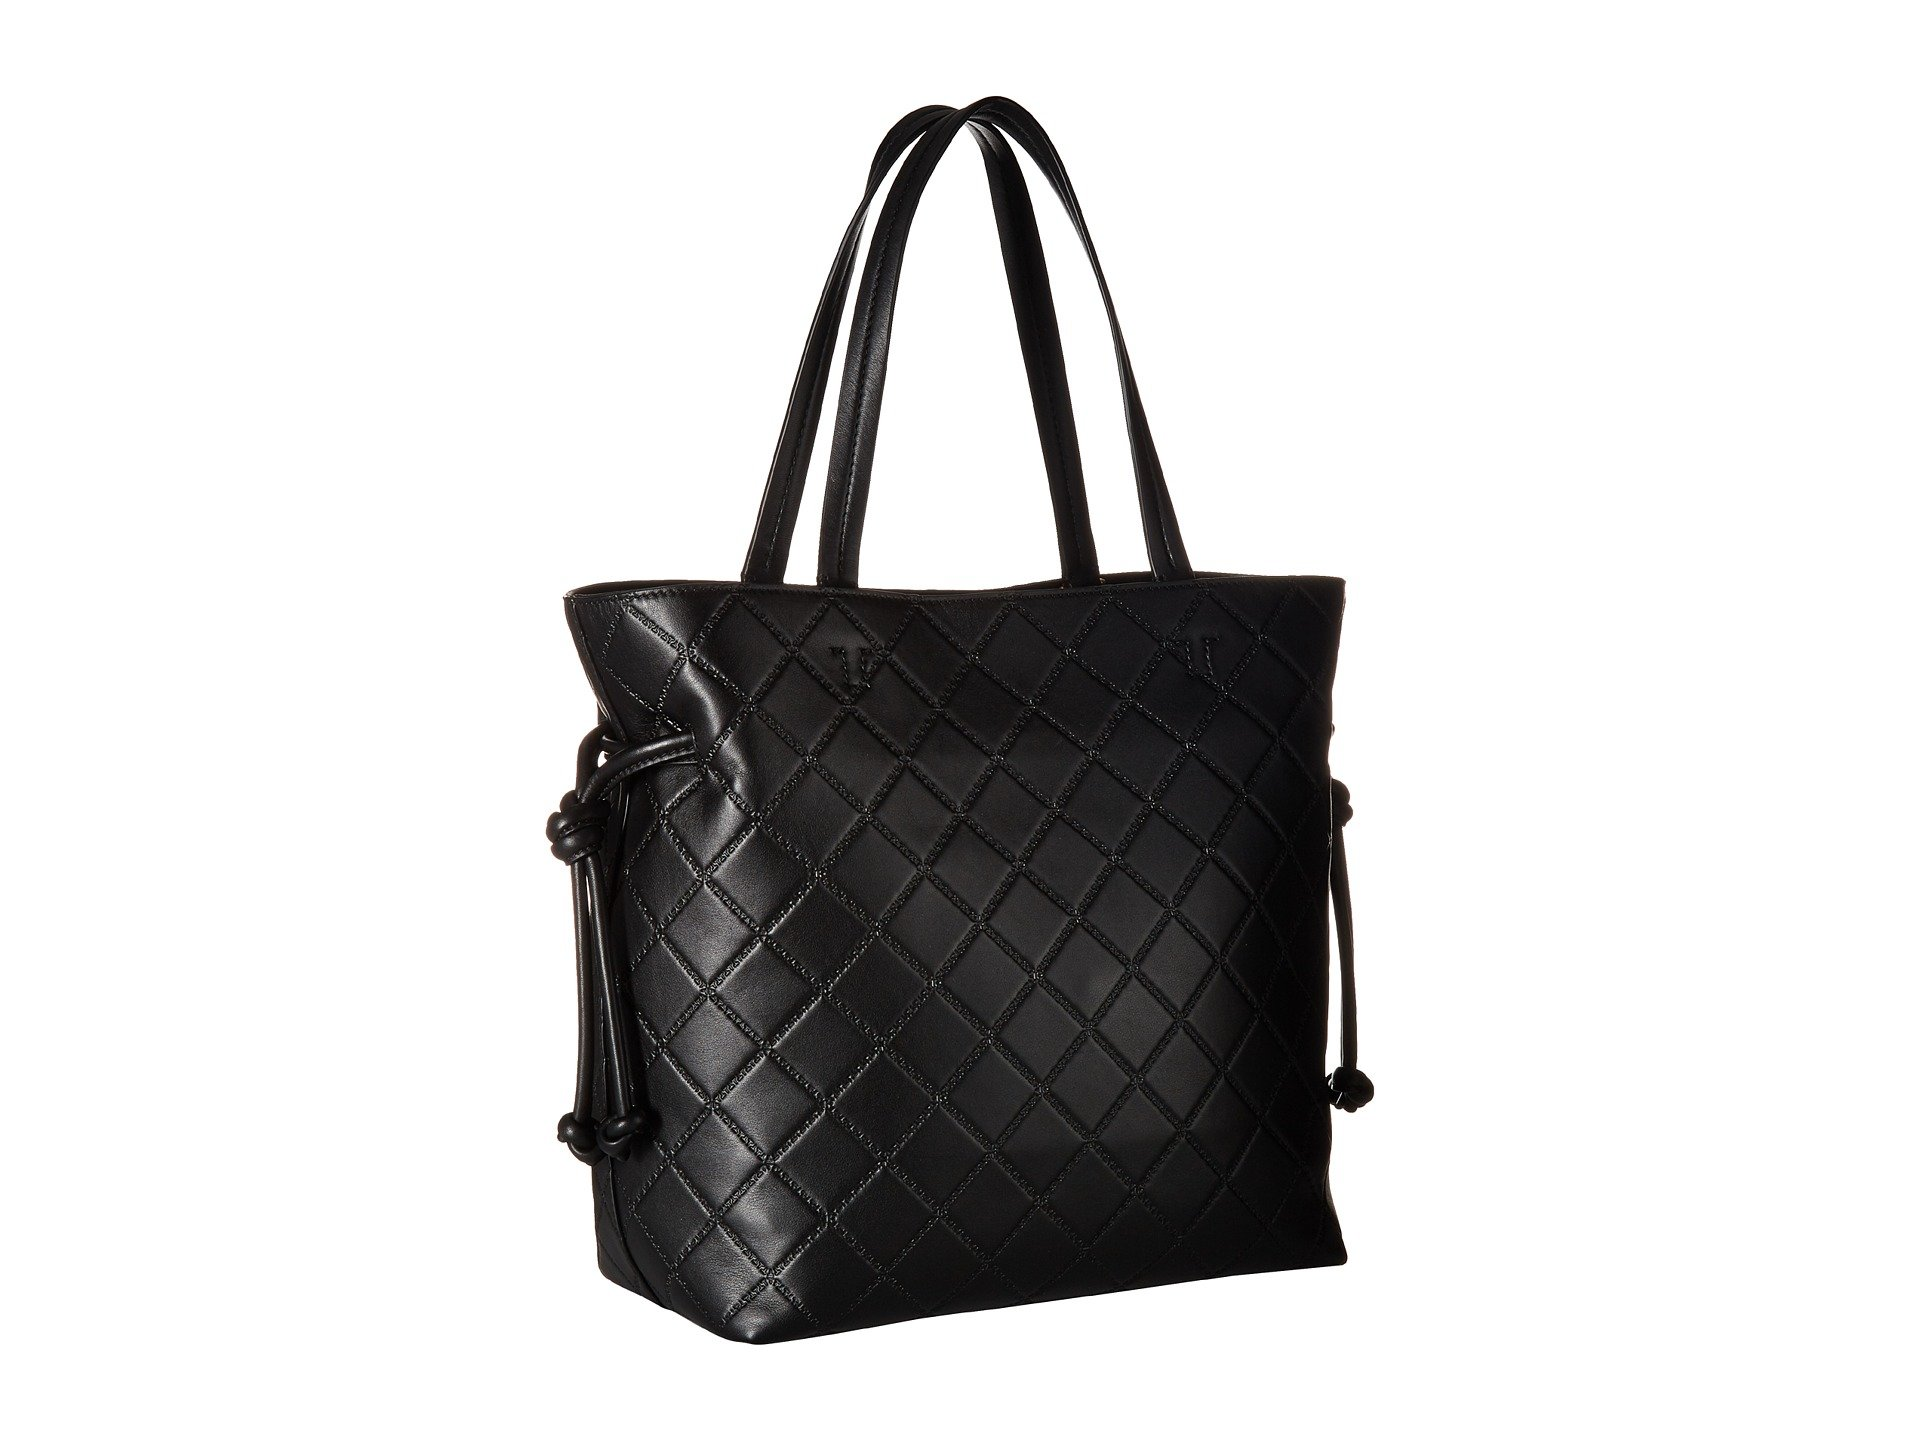 Tory Burch Georgia Slouchy Tote at Zappos.com : tory burch quilted tote - Adamdwight.com